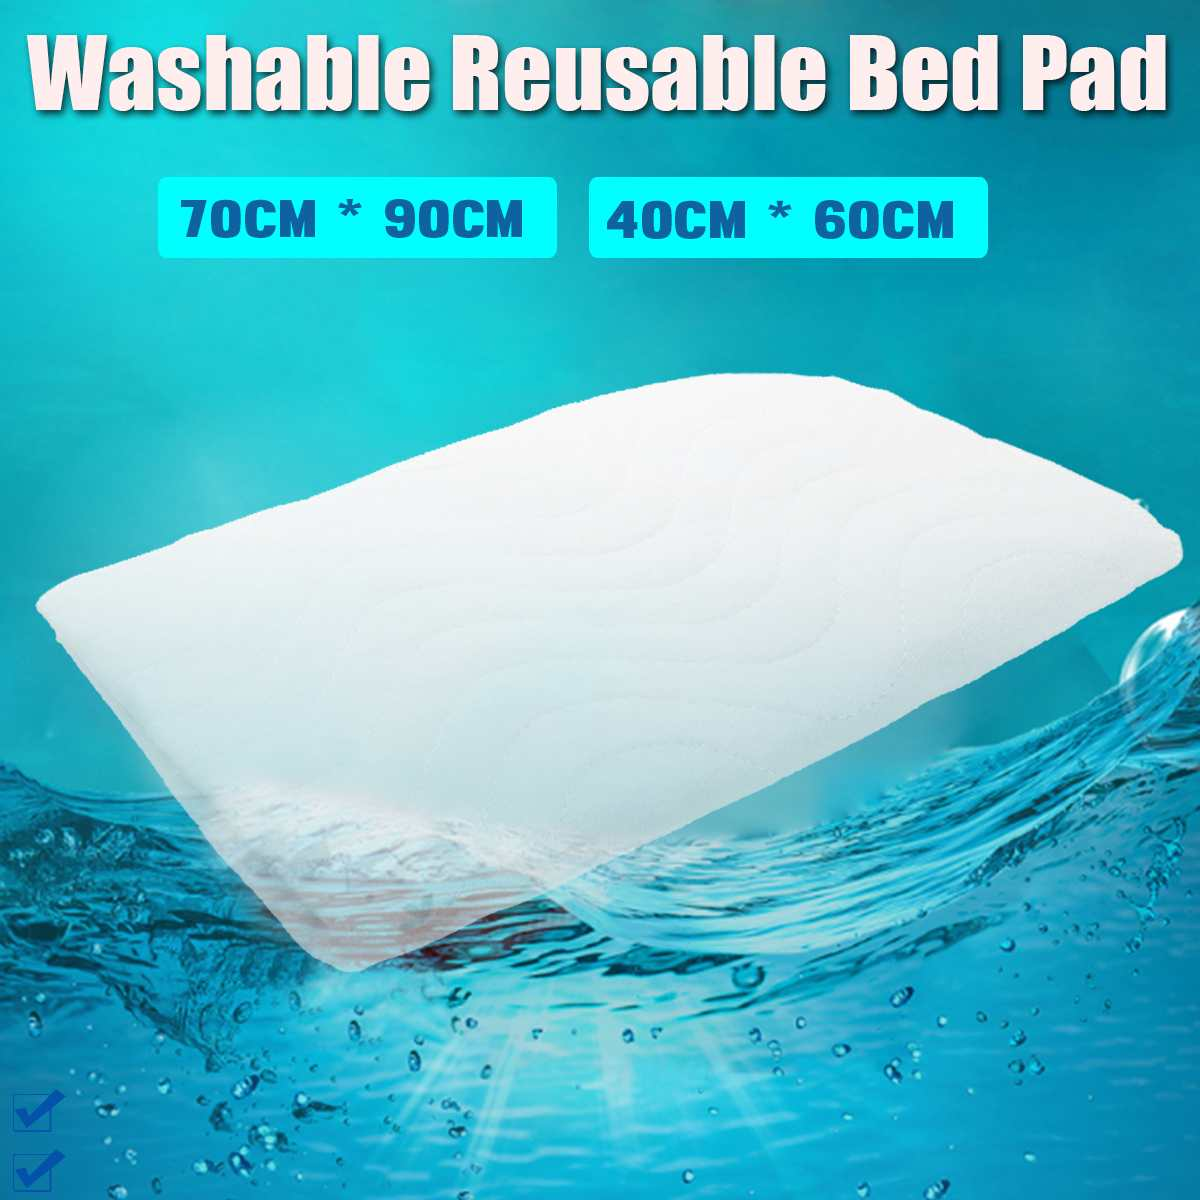 40x60cm/70x90cm Reusable Incontinence Bed Pad Washable Pad Absorbent Pad For Adults Incontinence Pad Baby Bedwetting